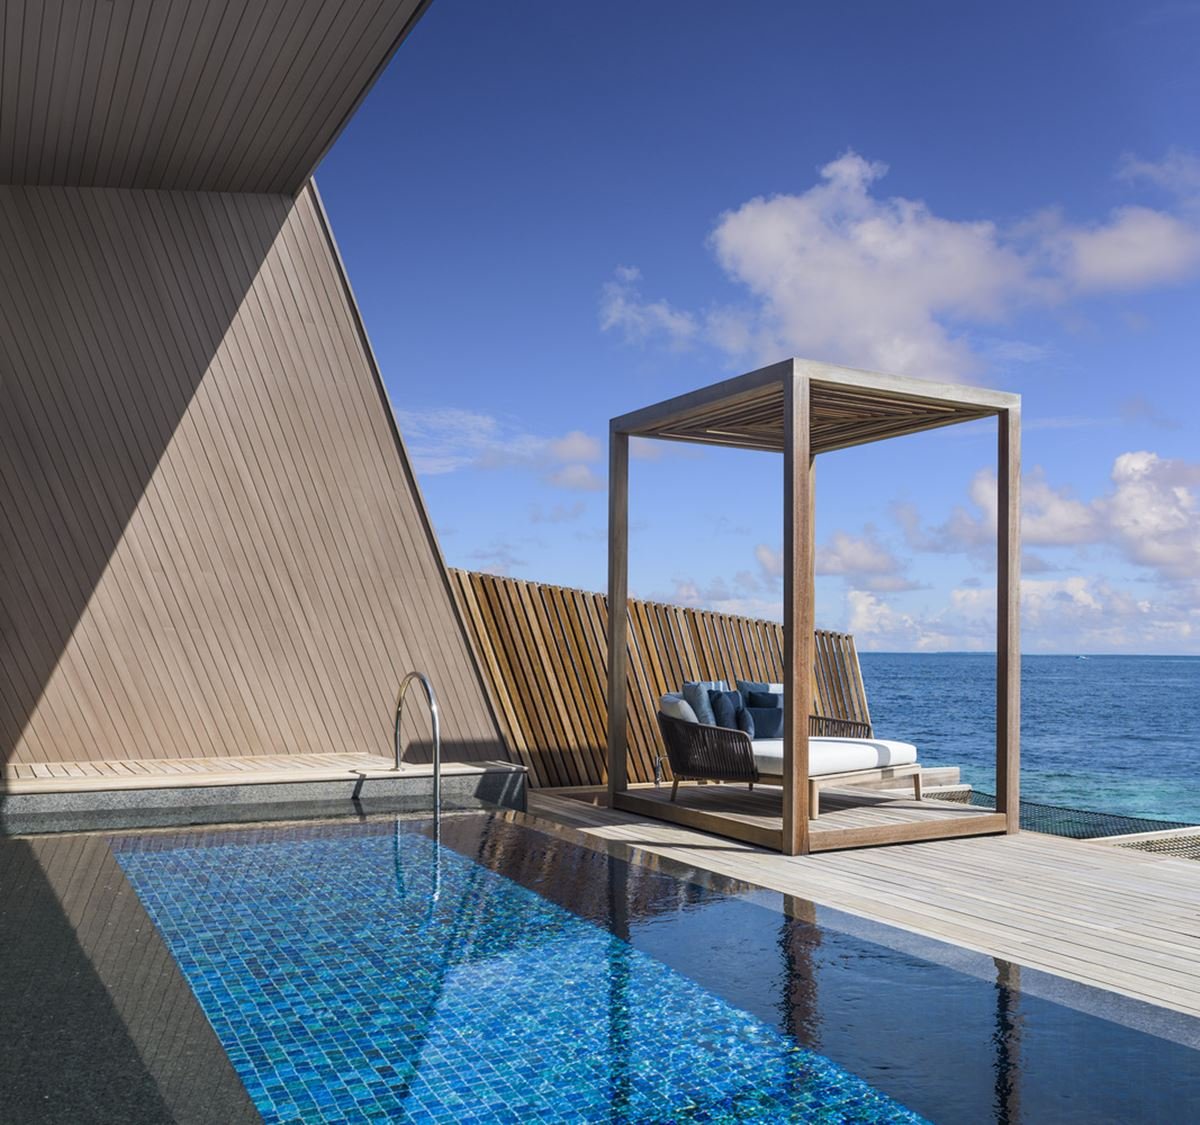 St. Regis Maldives Vommuli Resort - provate pool